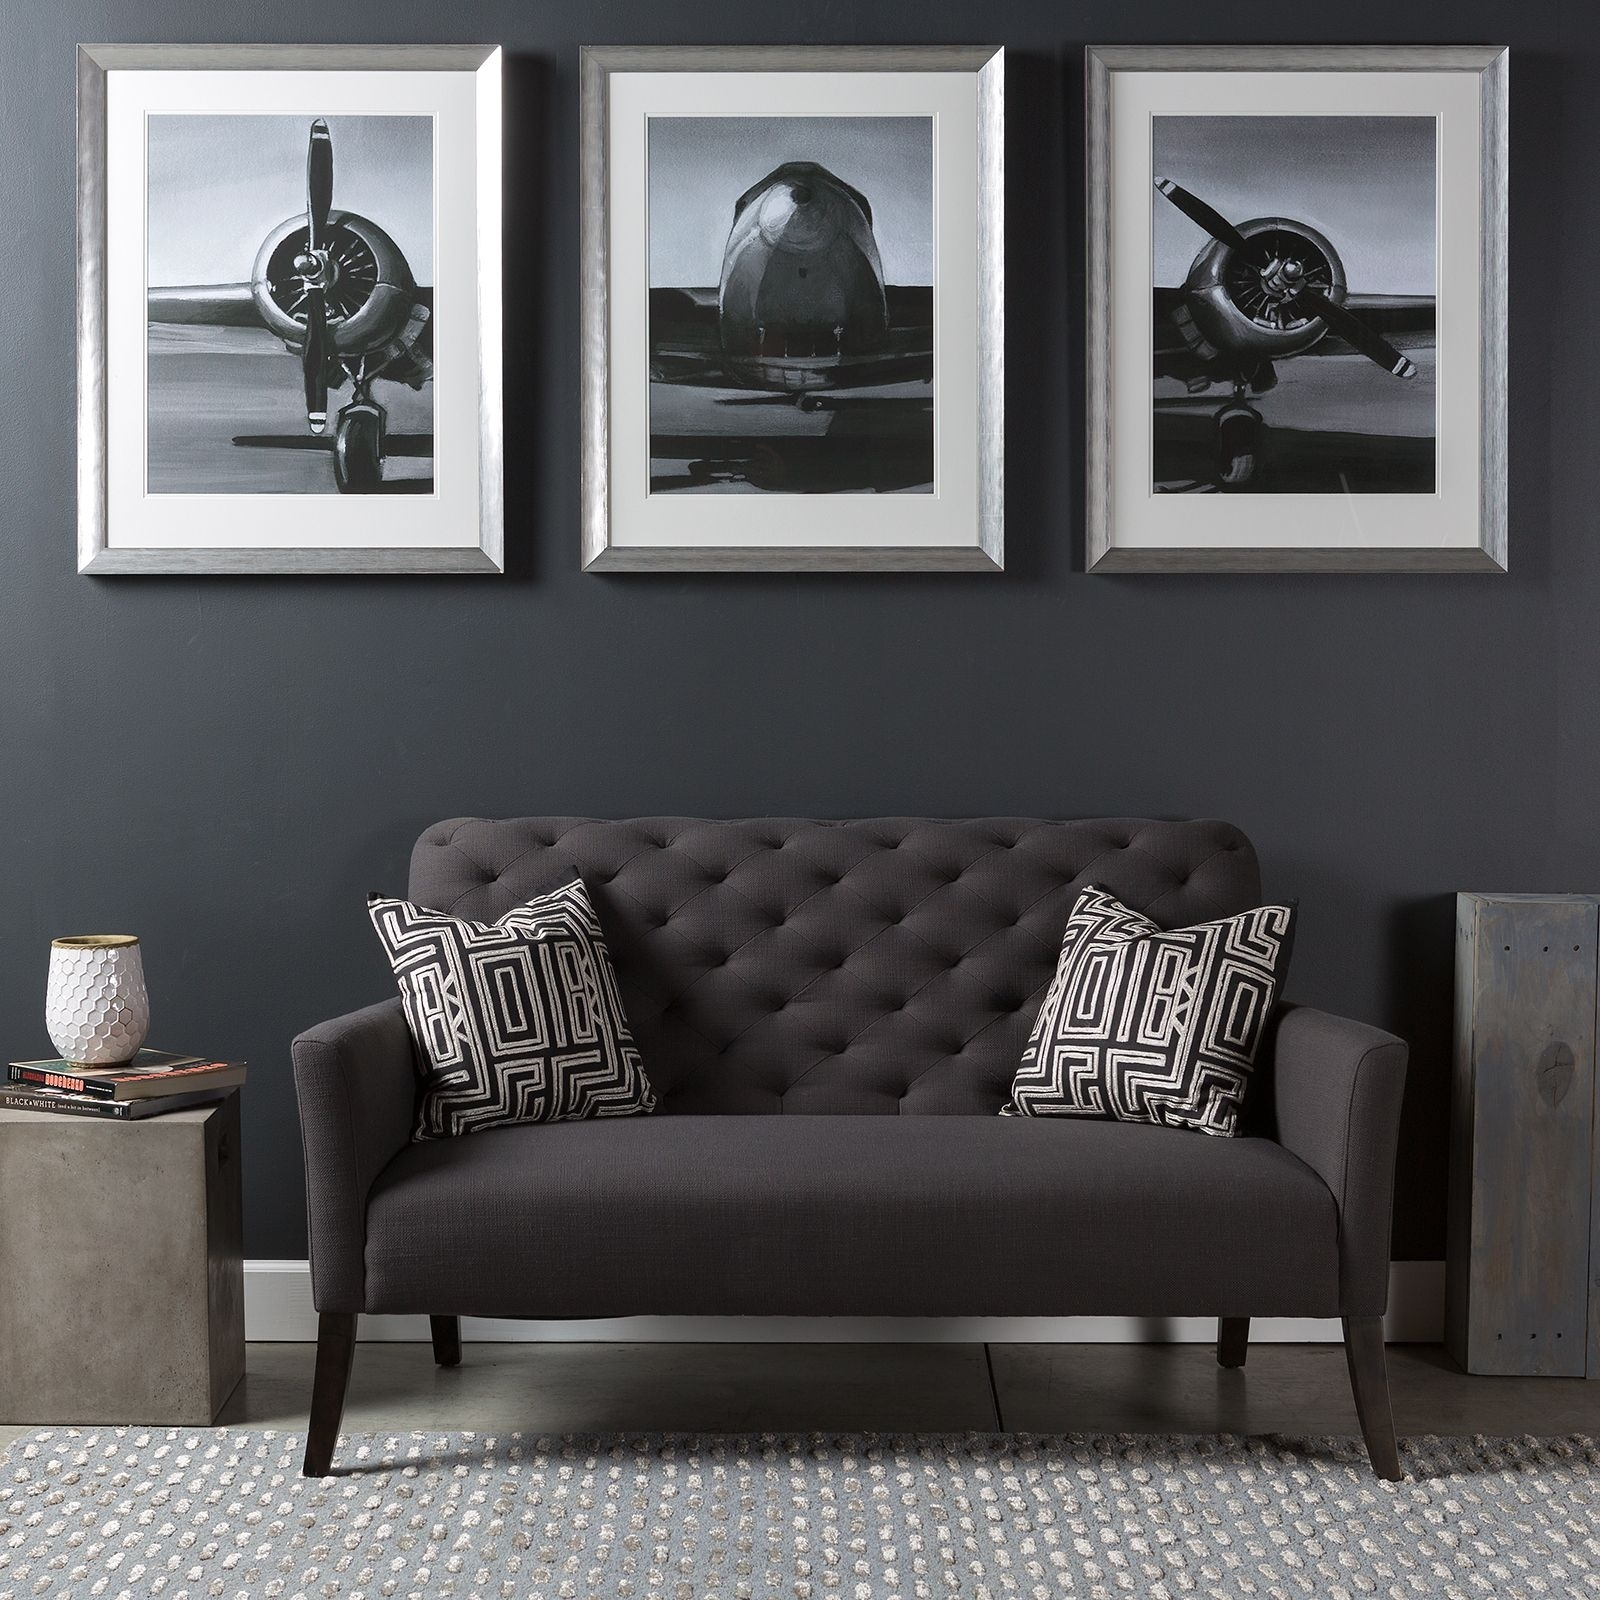 Creative Home Design Appealing Image Result For Modern Industrial with regard to Aviation Wall Art (Image 12 of 20)